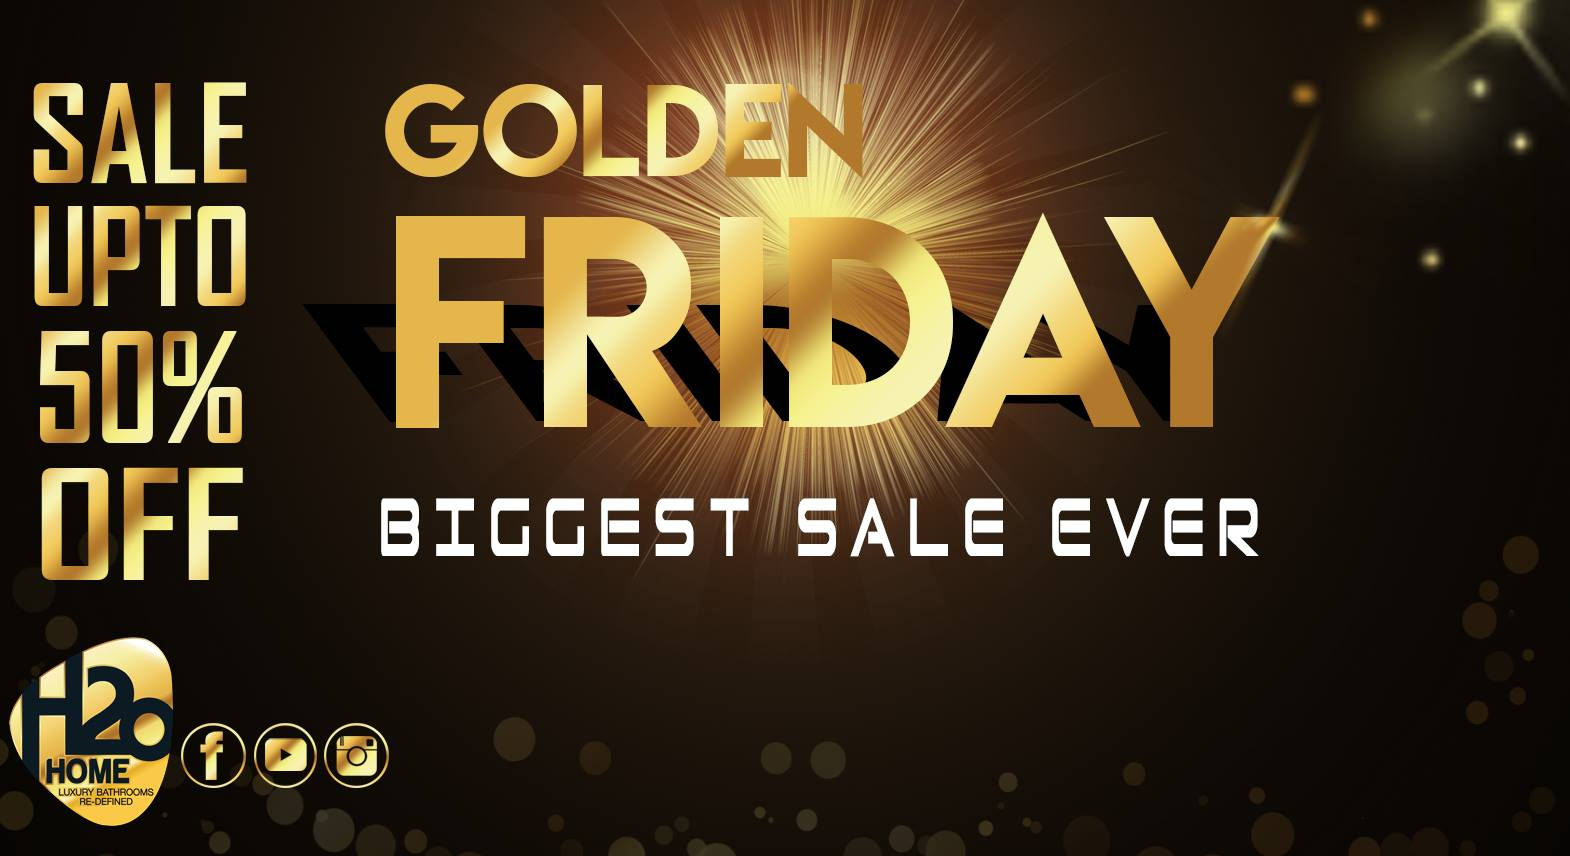 H20 Home  - GOLDEN FRIDAY - Biggest Sale Ever